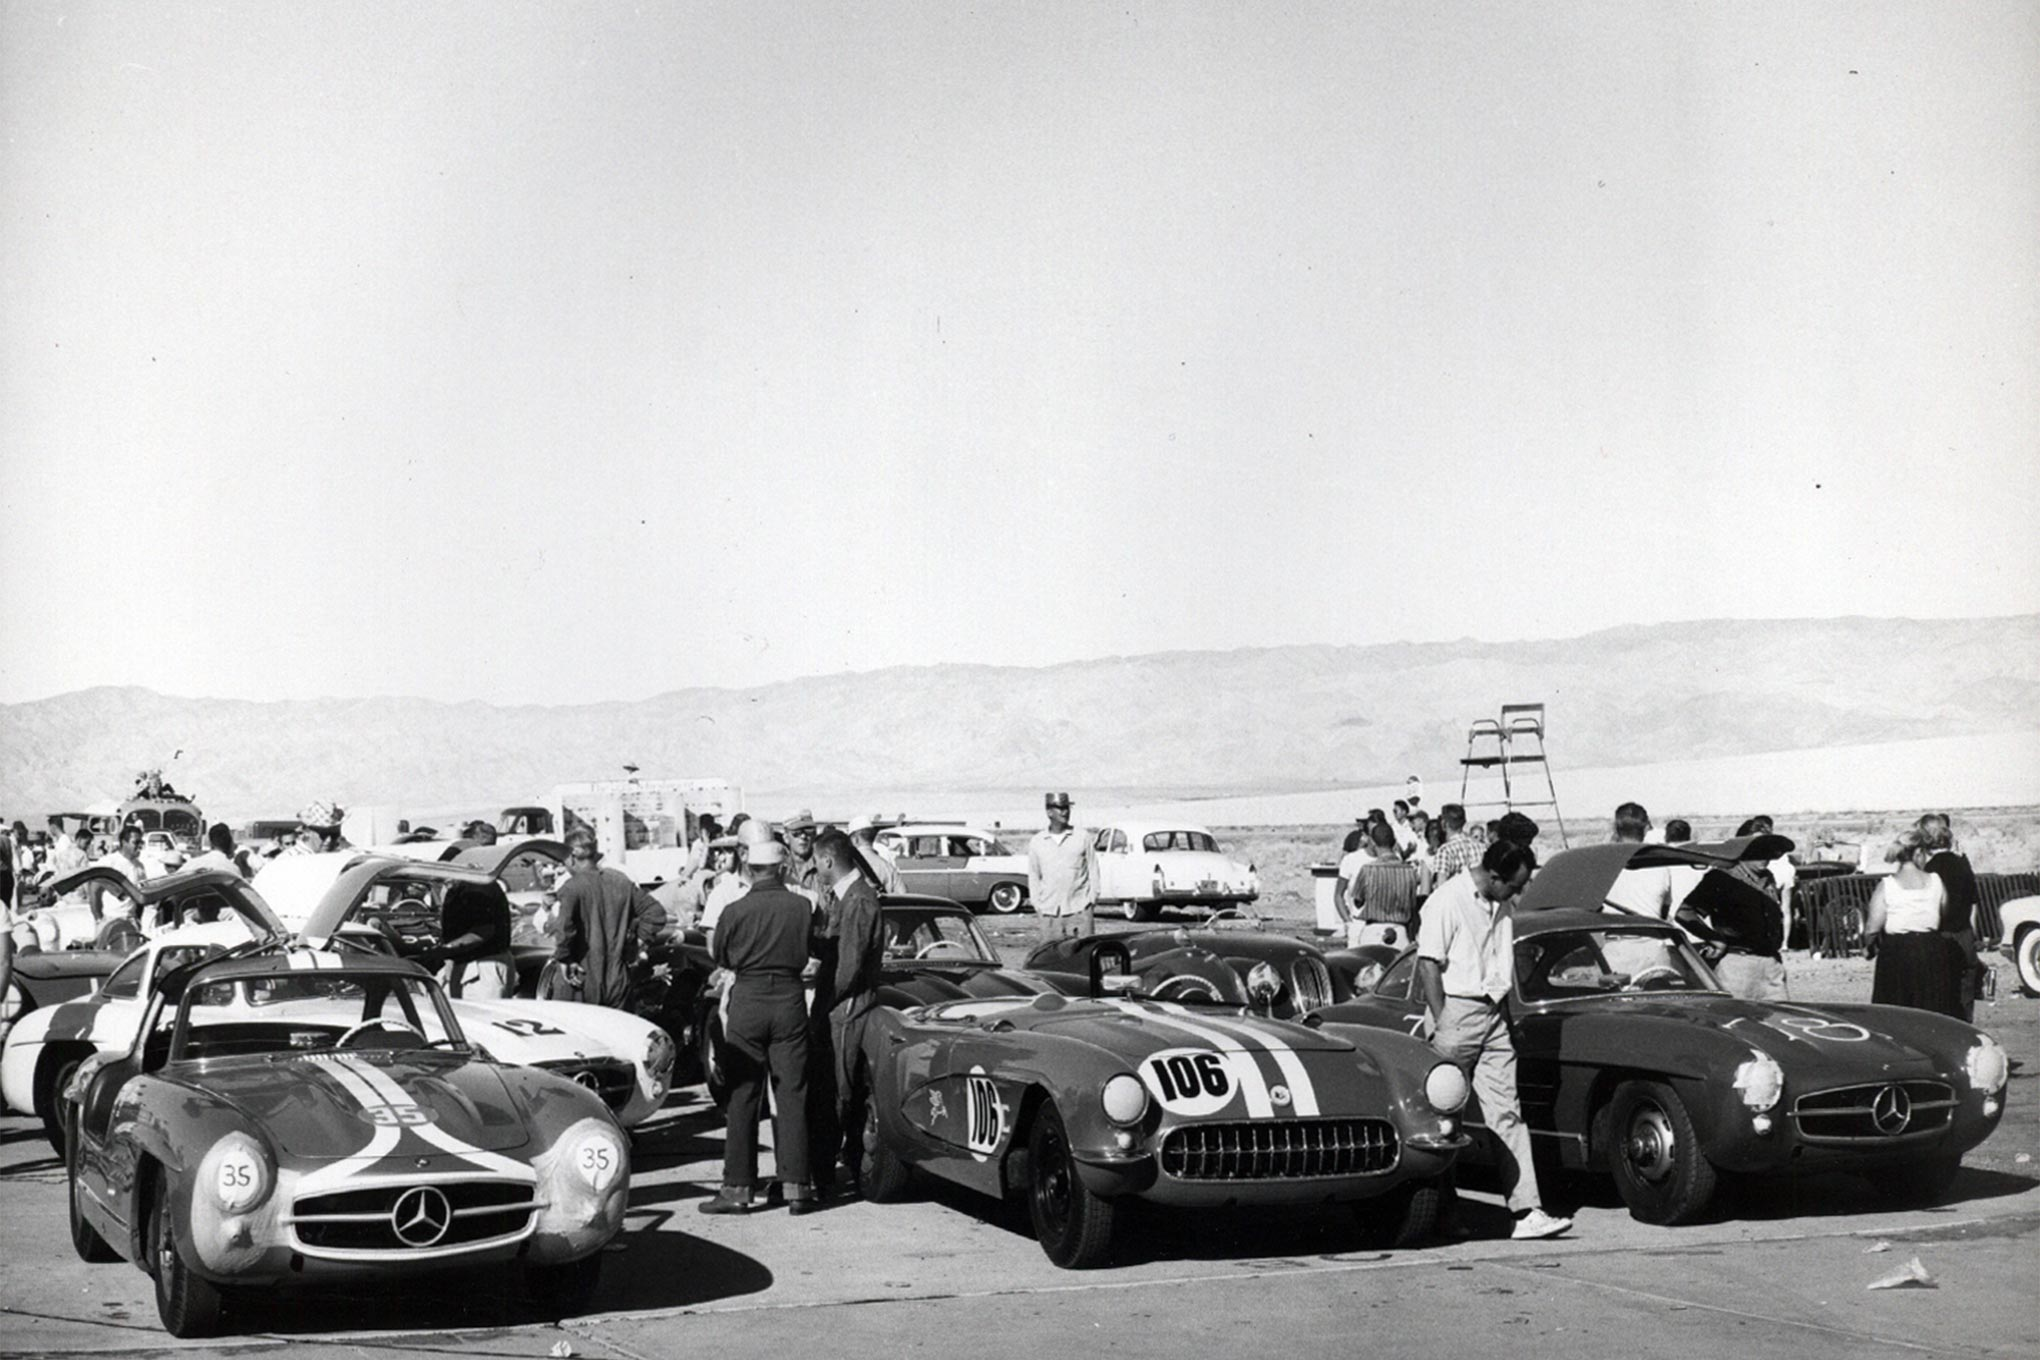 "Following their Production-class race, HOT ROD's hot rodders were known to reappear in the main event, challenging state-of-the-art European exoticars. ""America's sports car"" is surrounded by a trio of Mercedes-Benz gull-wing coupes. Having tested one at Motor Trend, D'Olivo described the 300 SL as ""practically a race car, right off the showroom floor."""